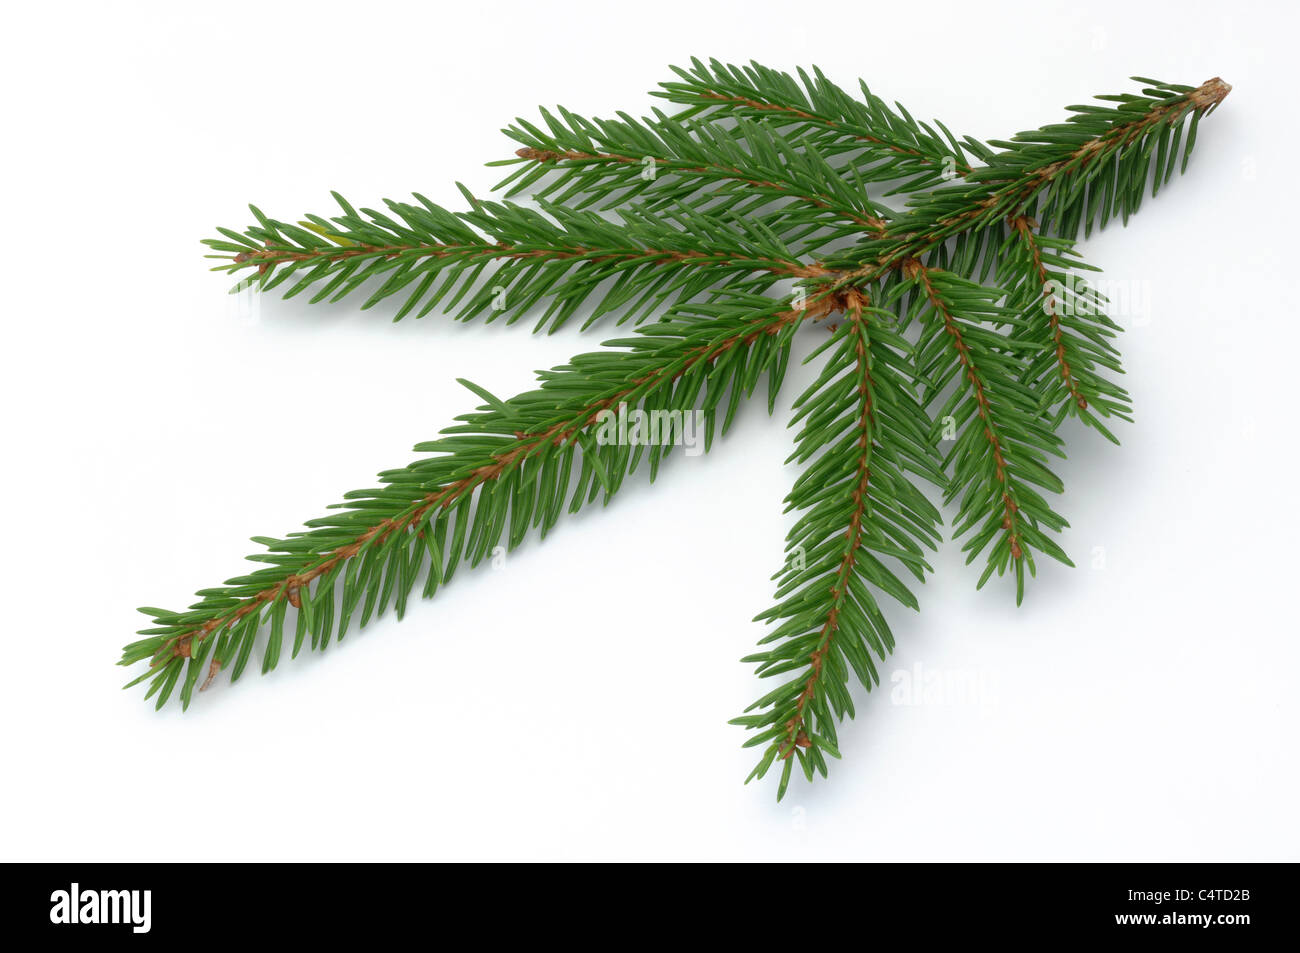 Common Spruce, Norway Spruce (Picea abies), twig. Studio picture against a white background. - Stock Image